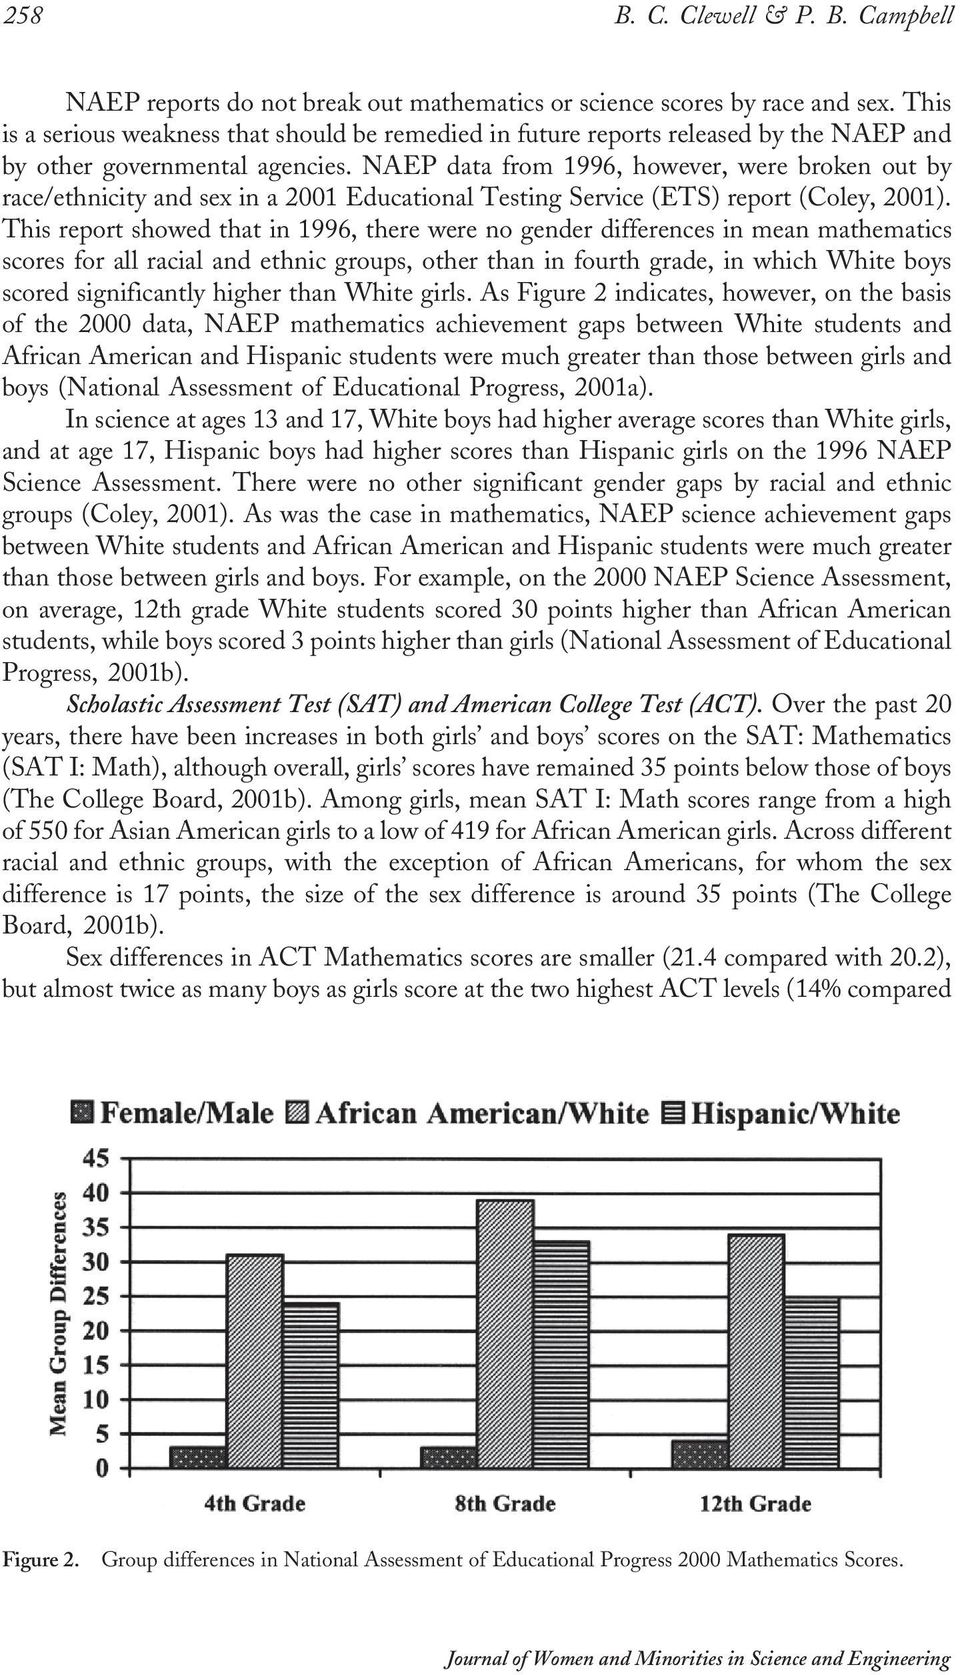 NAEP data from 1996, however, were broken out by race/ethnicity and sex in a 2001 Educational Testing Service (ETS) report (Coley, 2001).